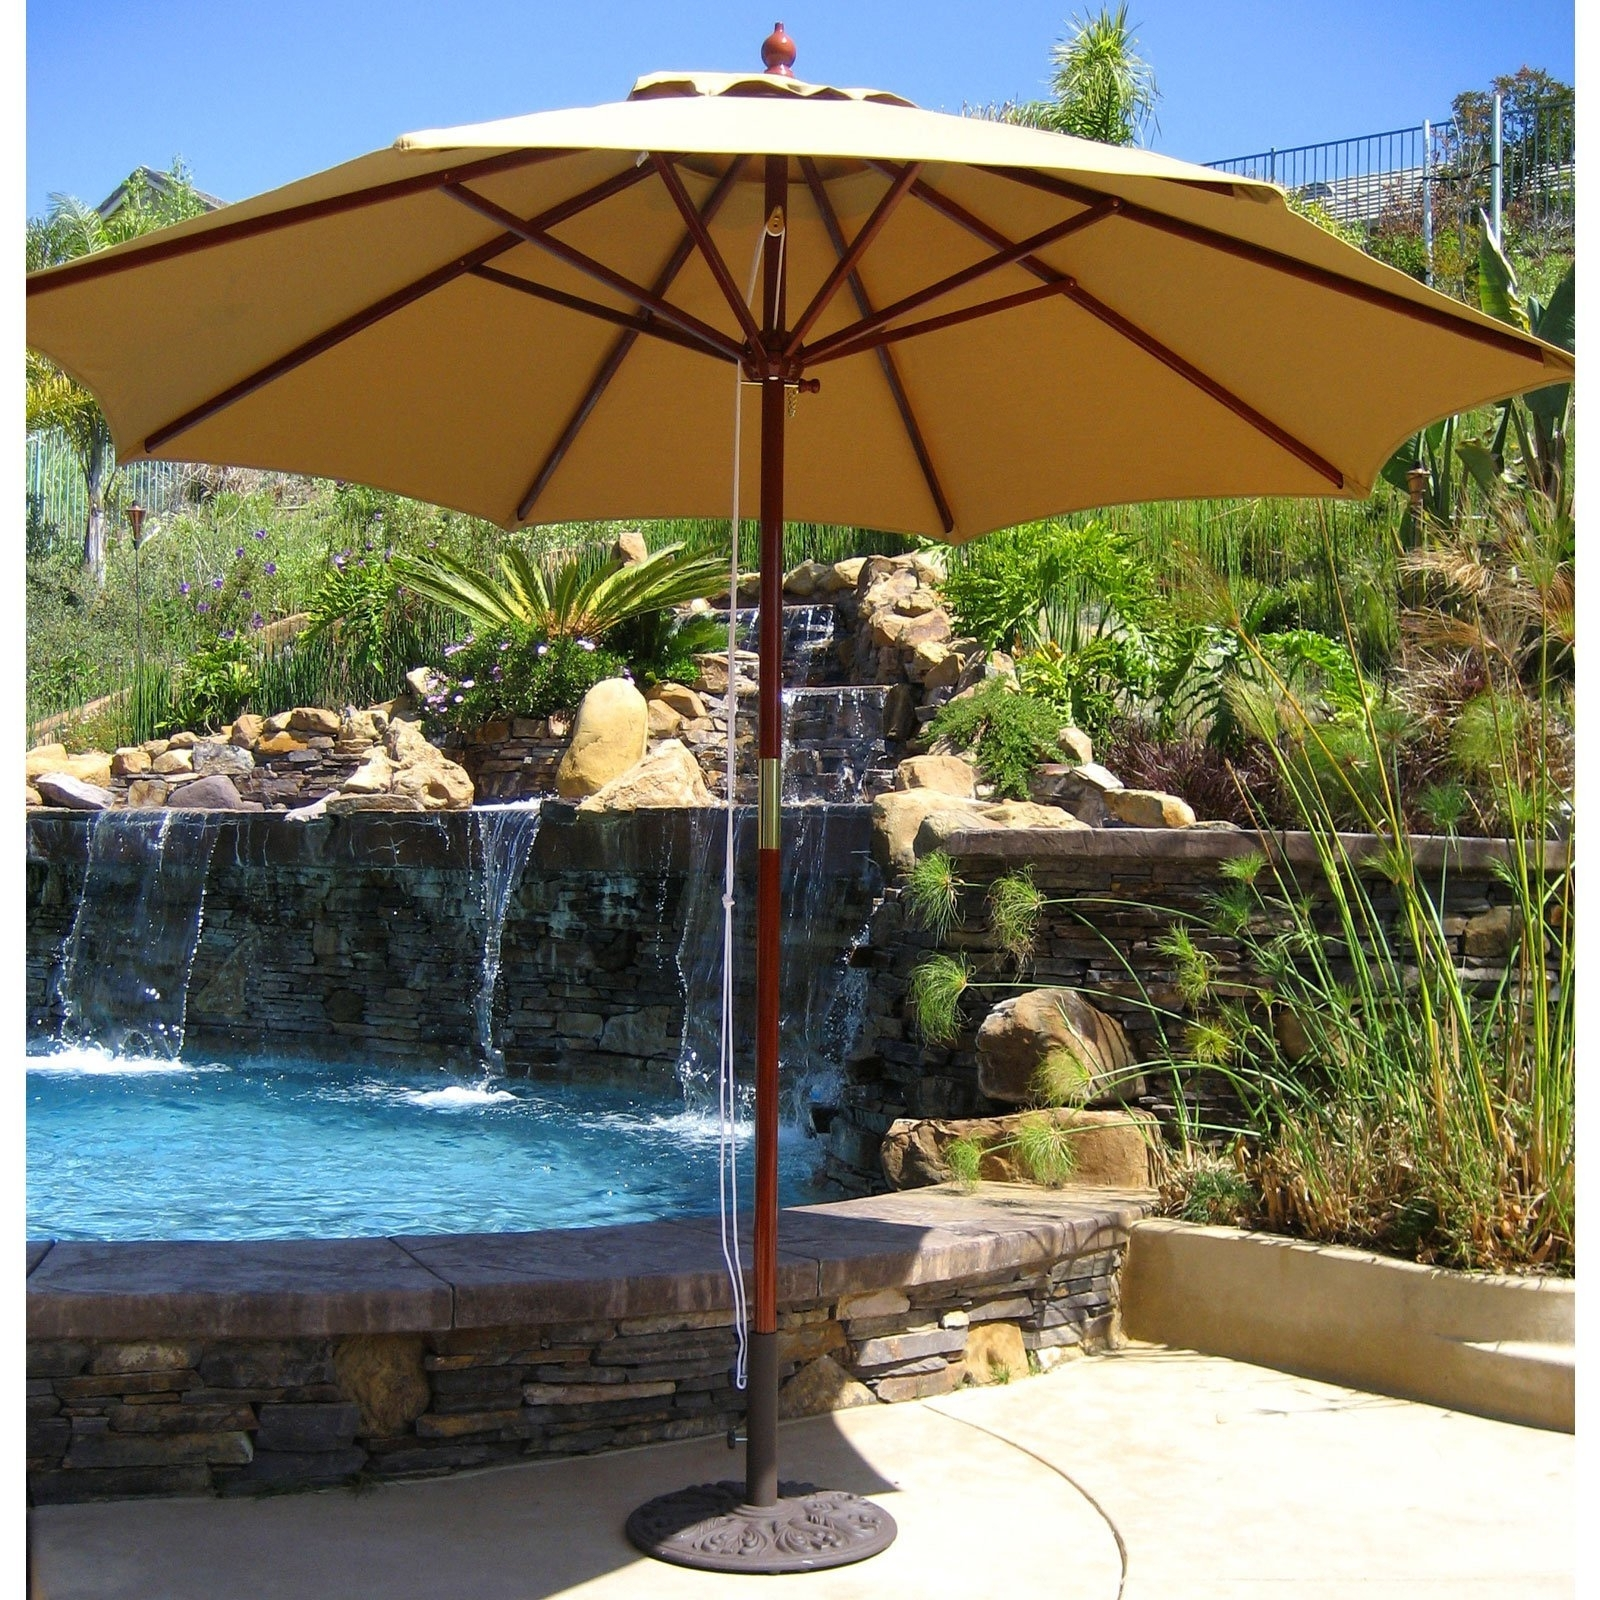 Startling Tweet Living Accents Round F Offset Umbrella At Ace Within Most Popular Costco Cantilever Patio Umbrellas (View 14 of 20)